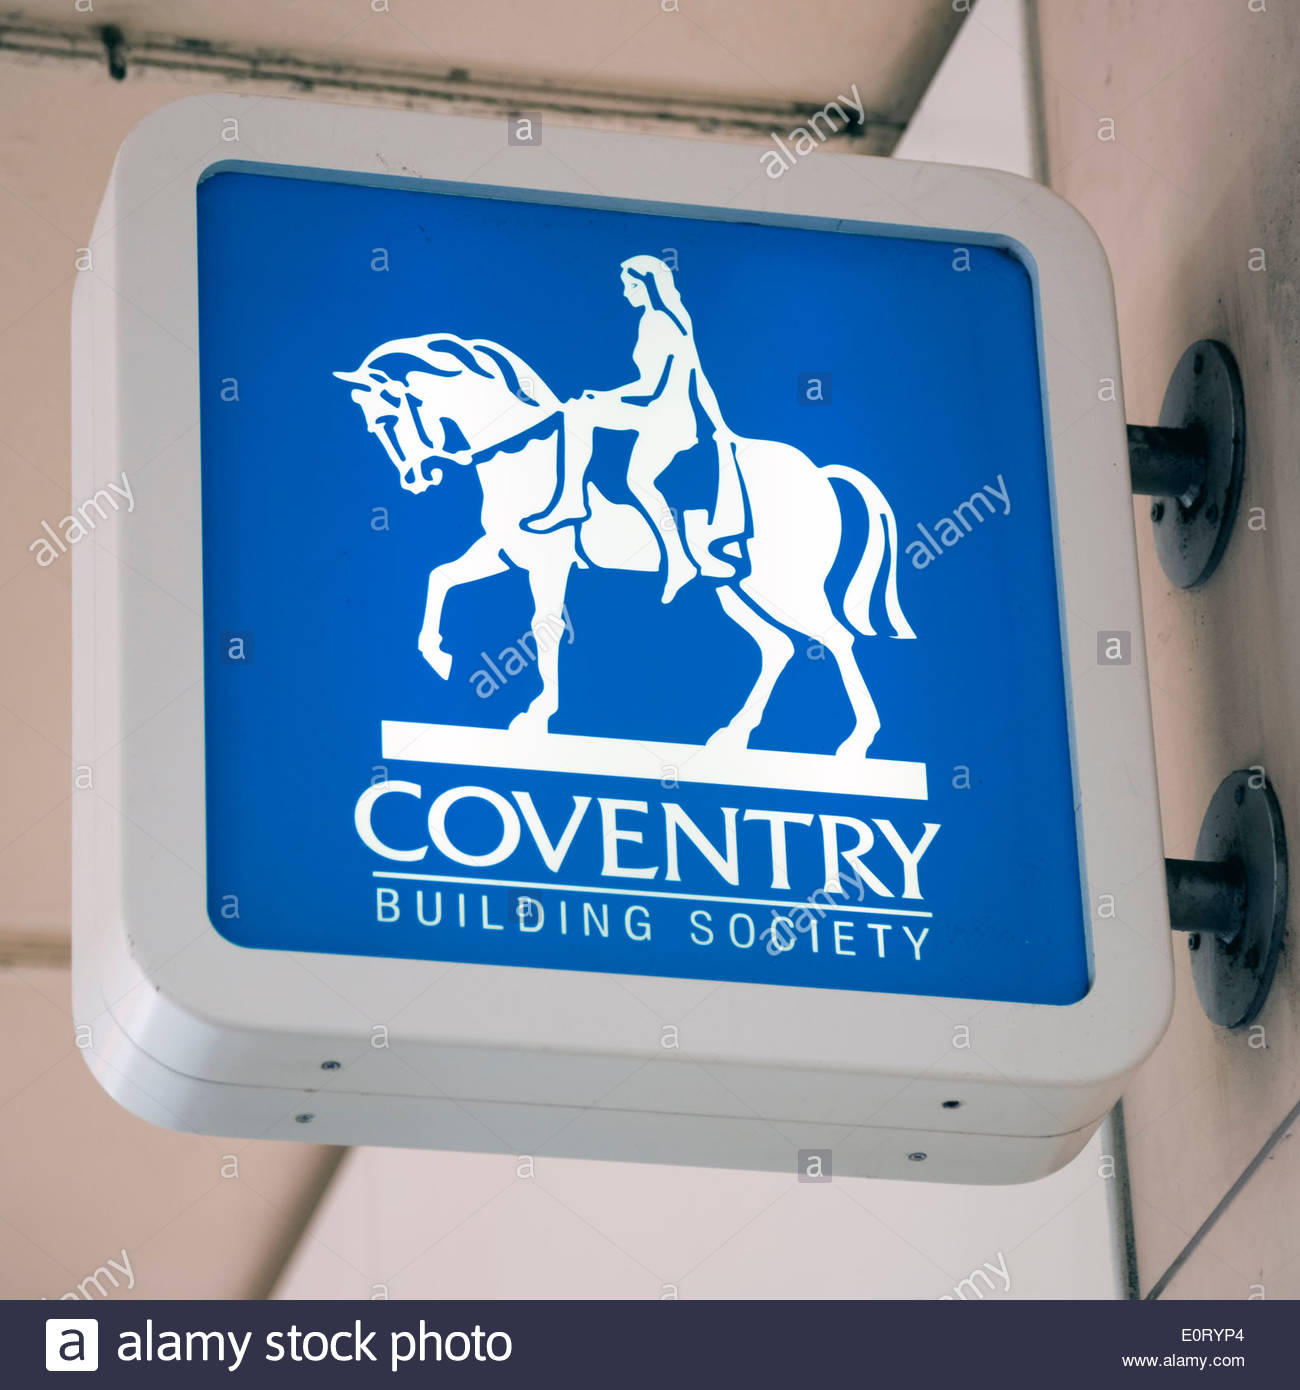 Coventry Building Society sign in Birmingham City Centre, UK. - Stock Image